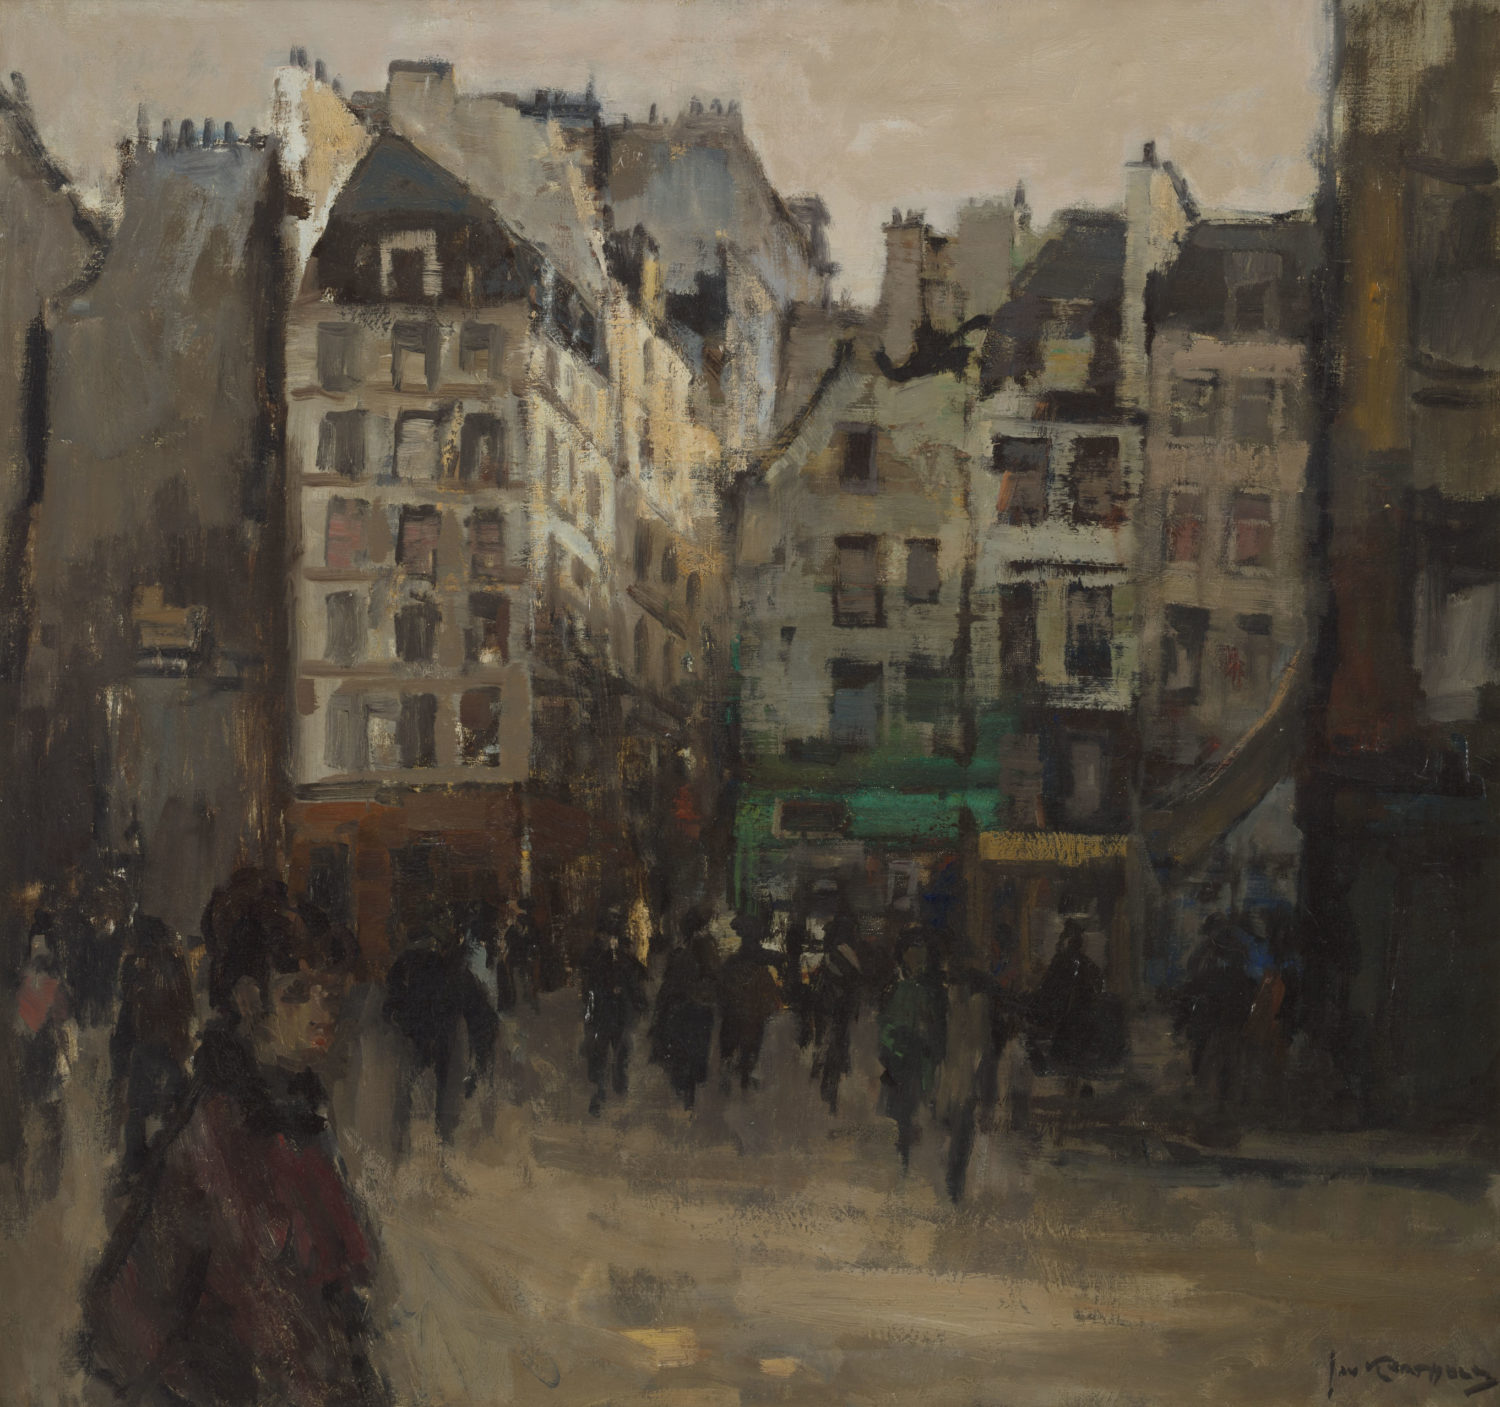 Jan Korthals | A town view with many figures | Kunsthandel Bies | Bies Gallery